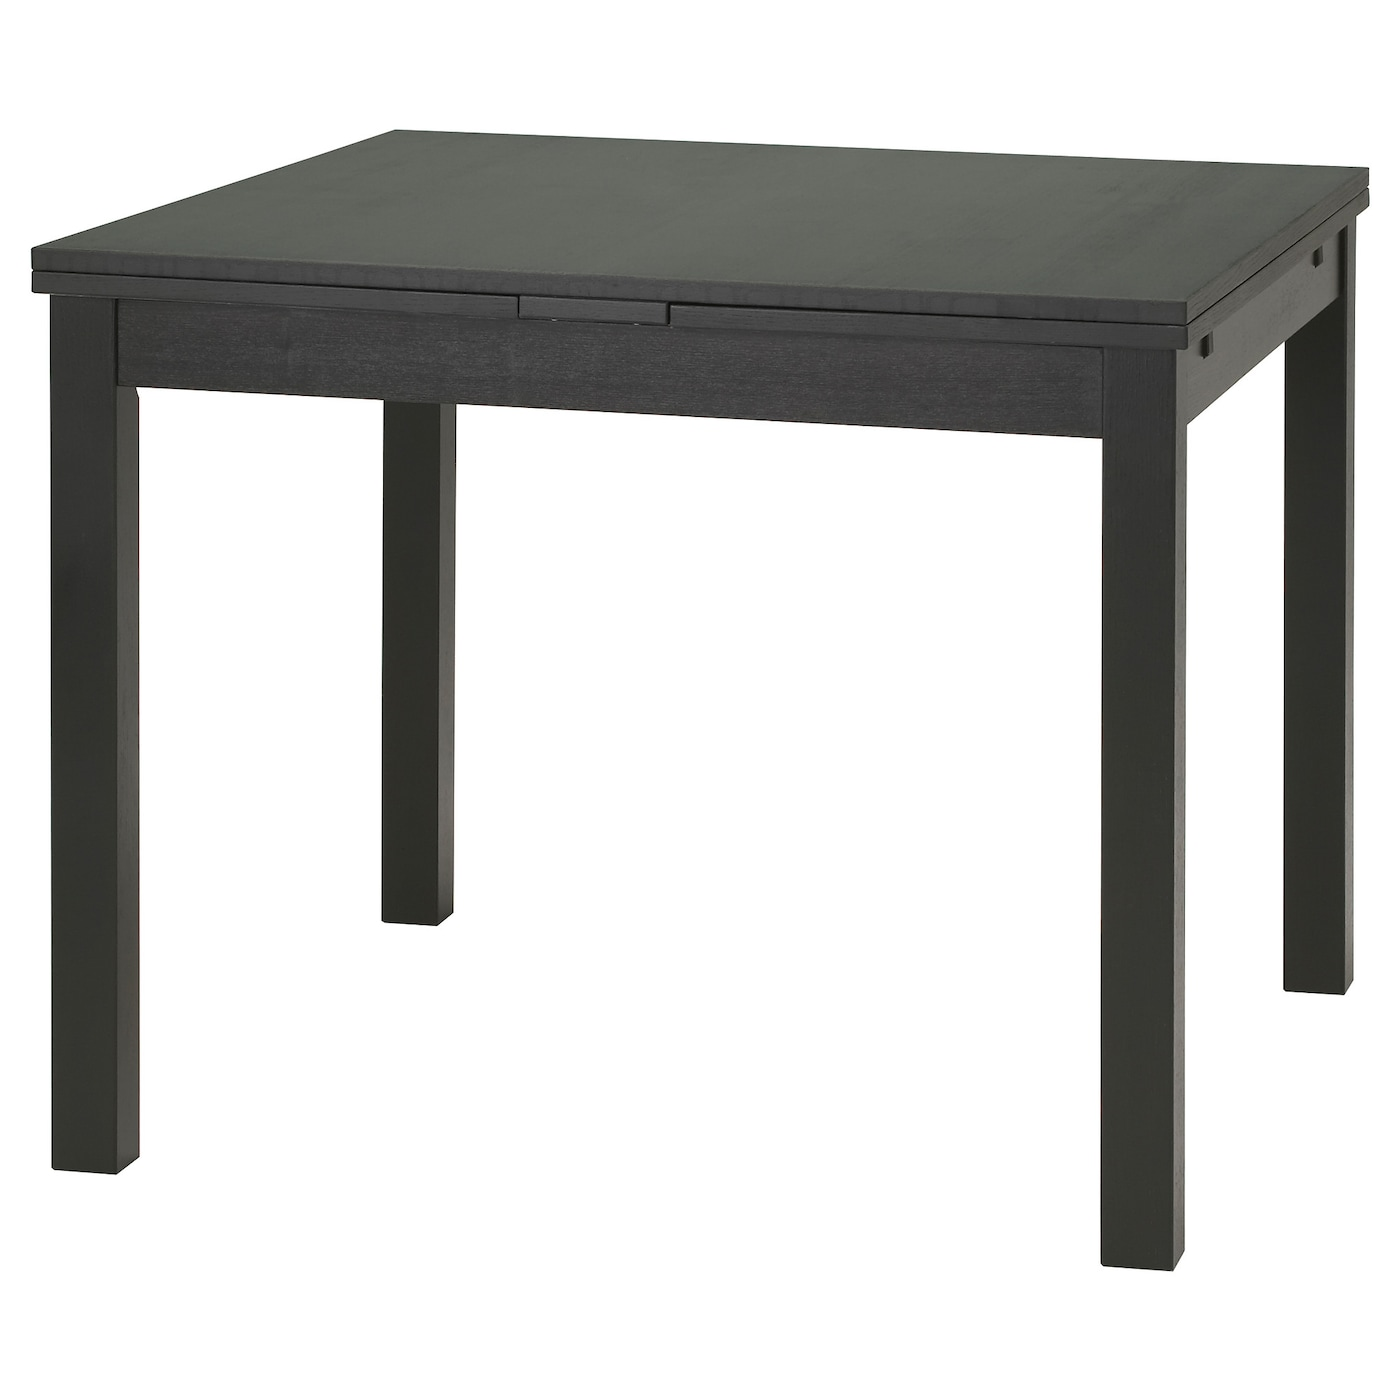 Bjursta extendable table brown black 90 129 168x90 cm ikea for Table sejour extensible